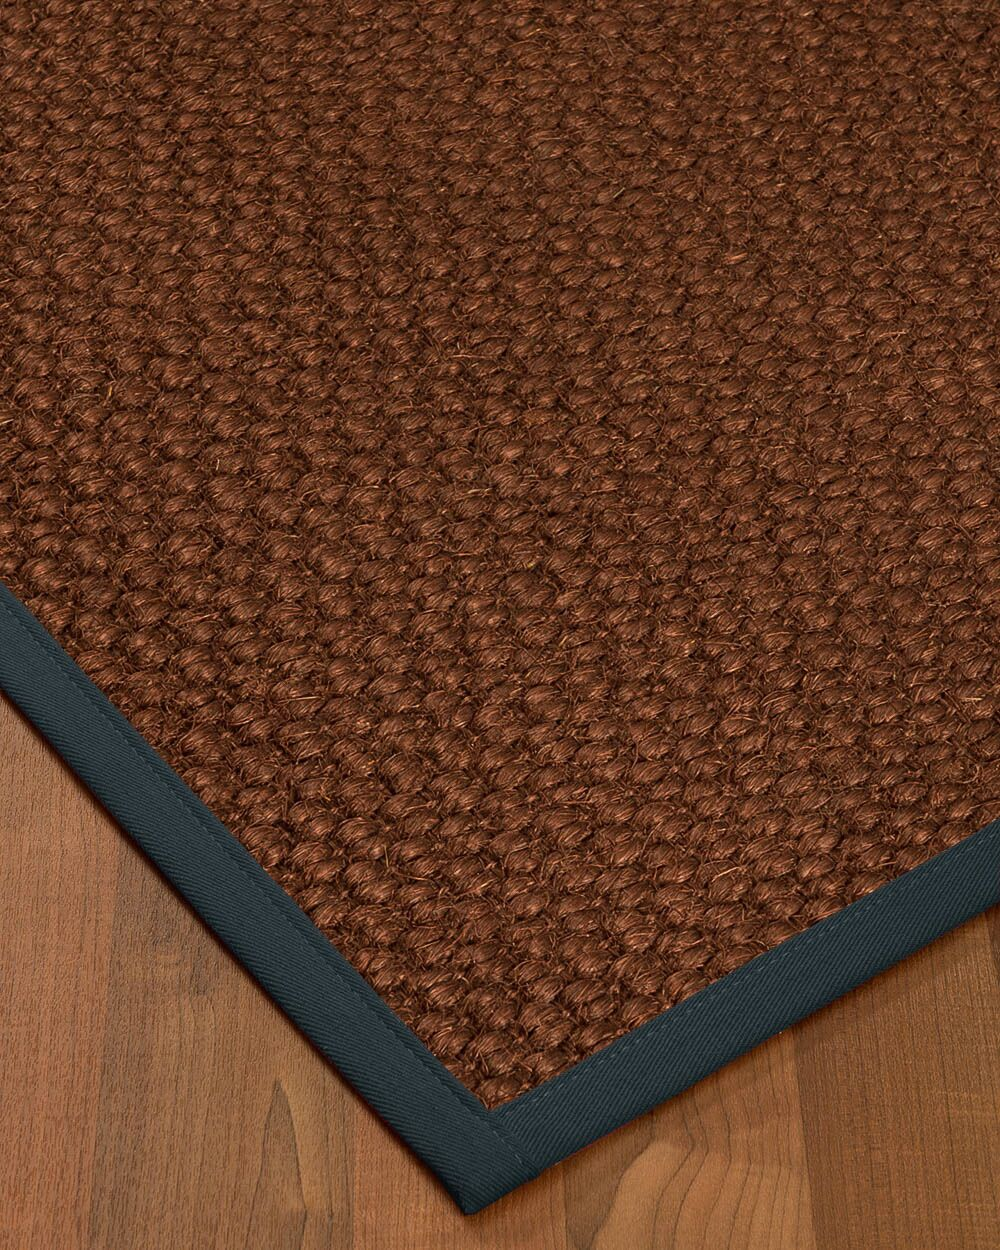 Kerrick Border Hand-Woven Brown/Navy Area Rug Rug Pad Included: No, Rug Size: Rectangle 3' x 5'